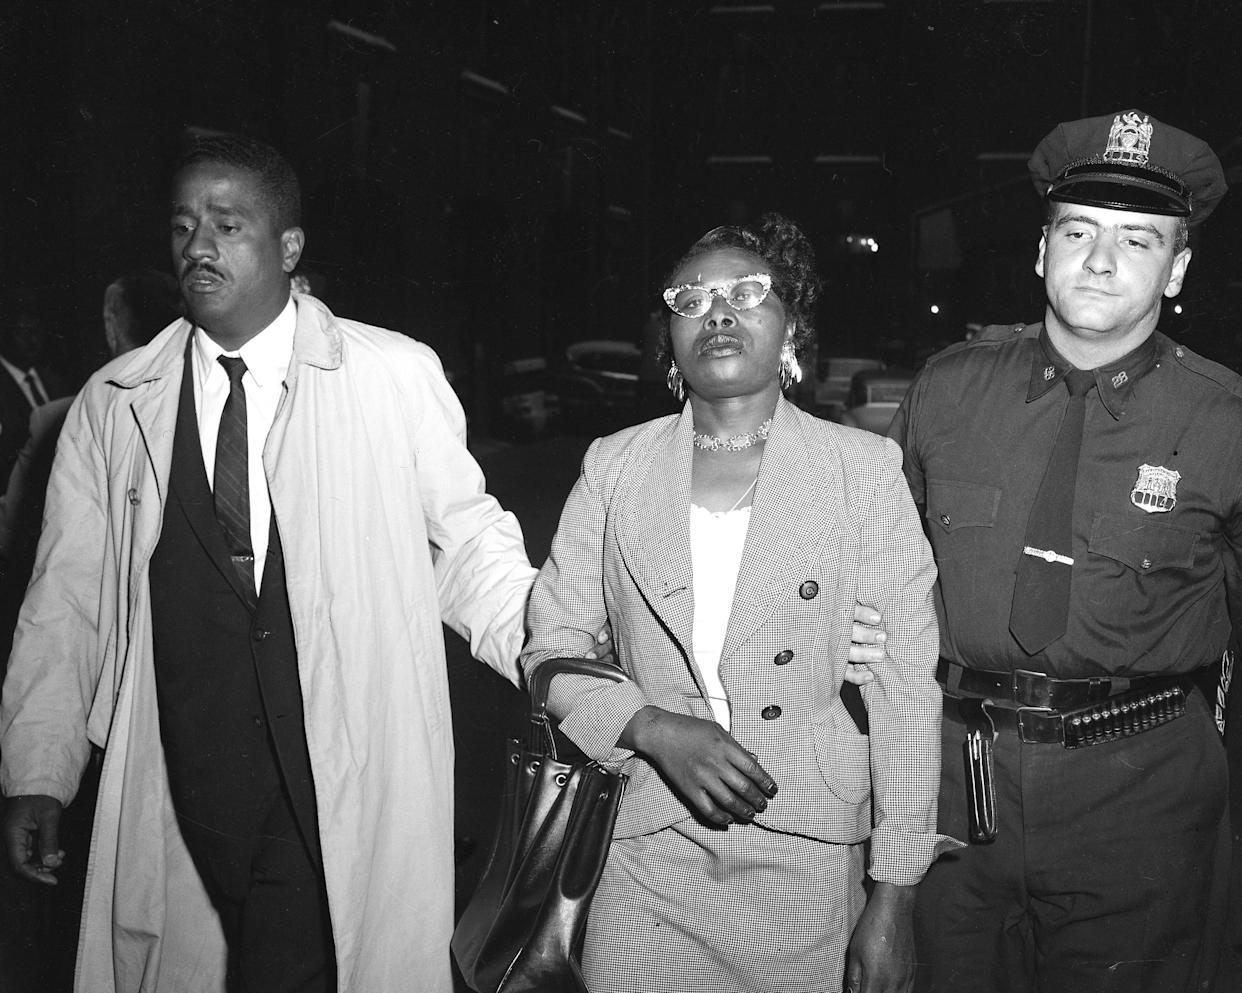 Izola Ware Curry is arrested for stabbing Martin Luther King Jr. with a letter opener at a department store in Harlem while he was there for a book signing, on Sept. 20, 1958. (Photo: Pat Candido/NY Daily News via Getty Images)